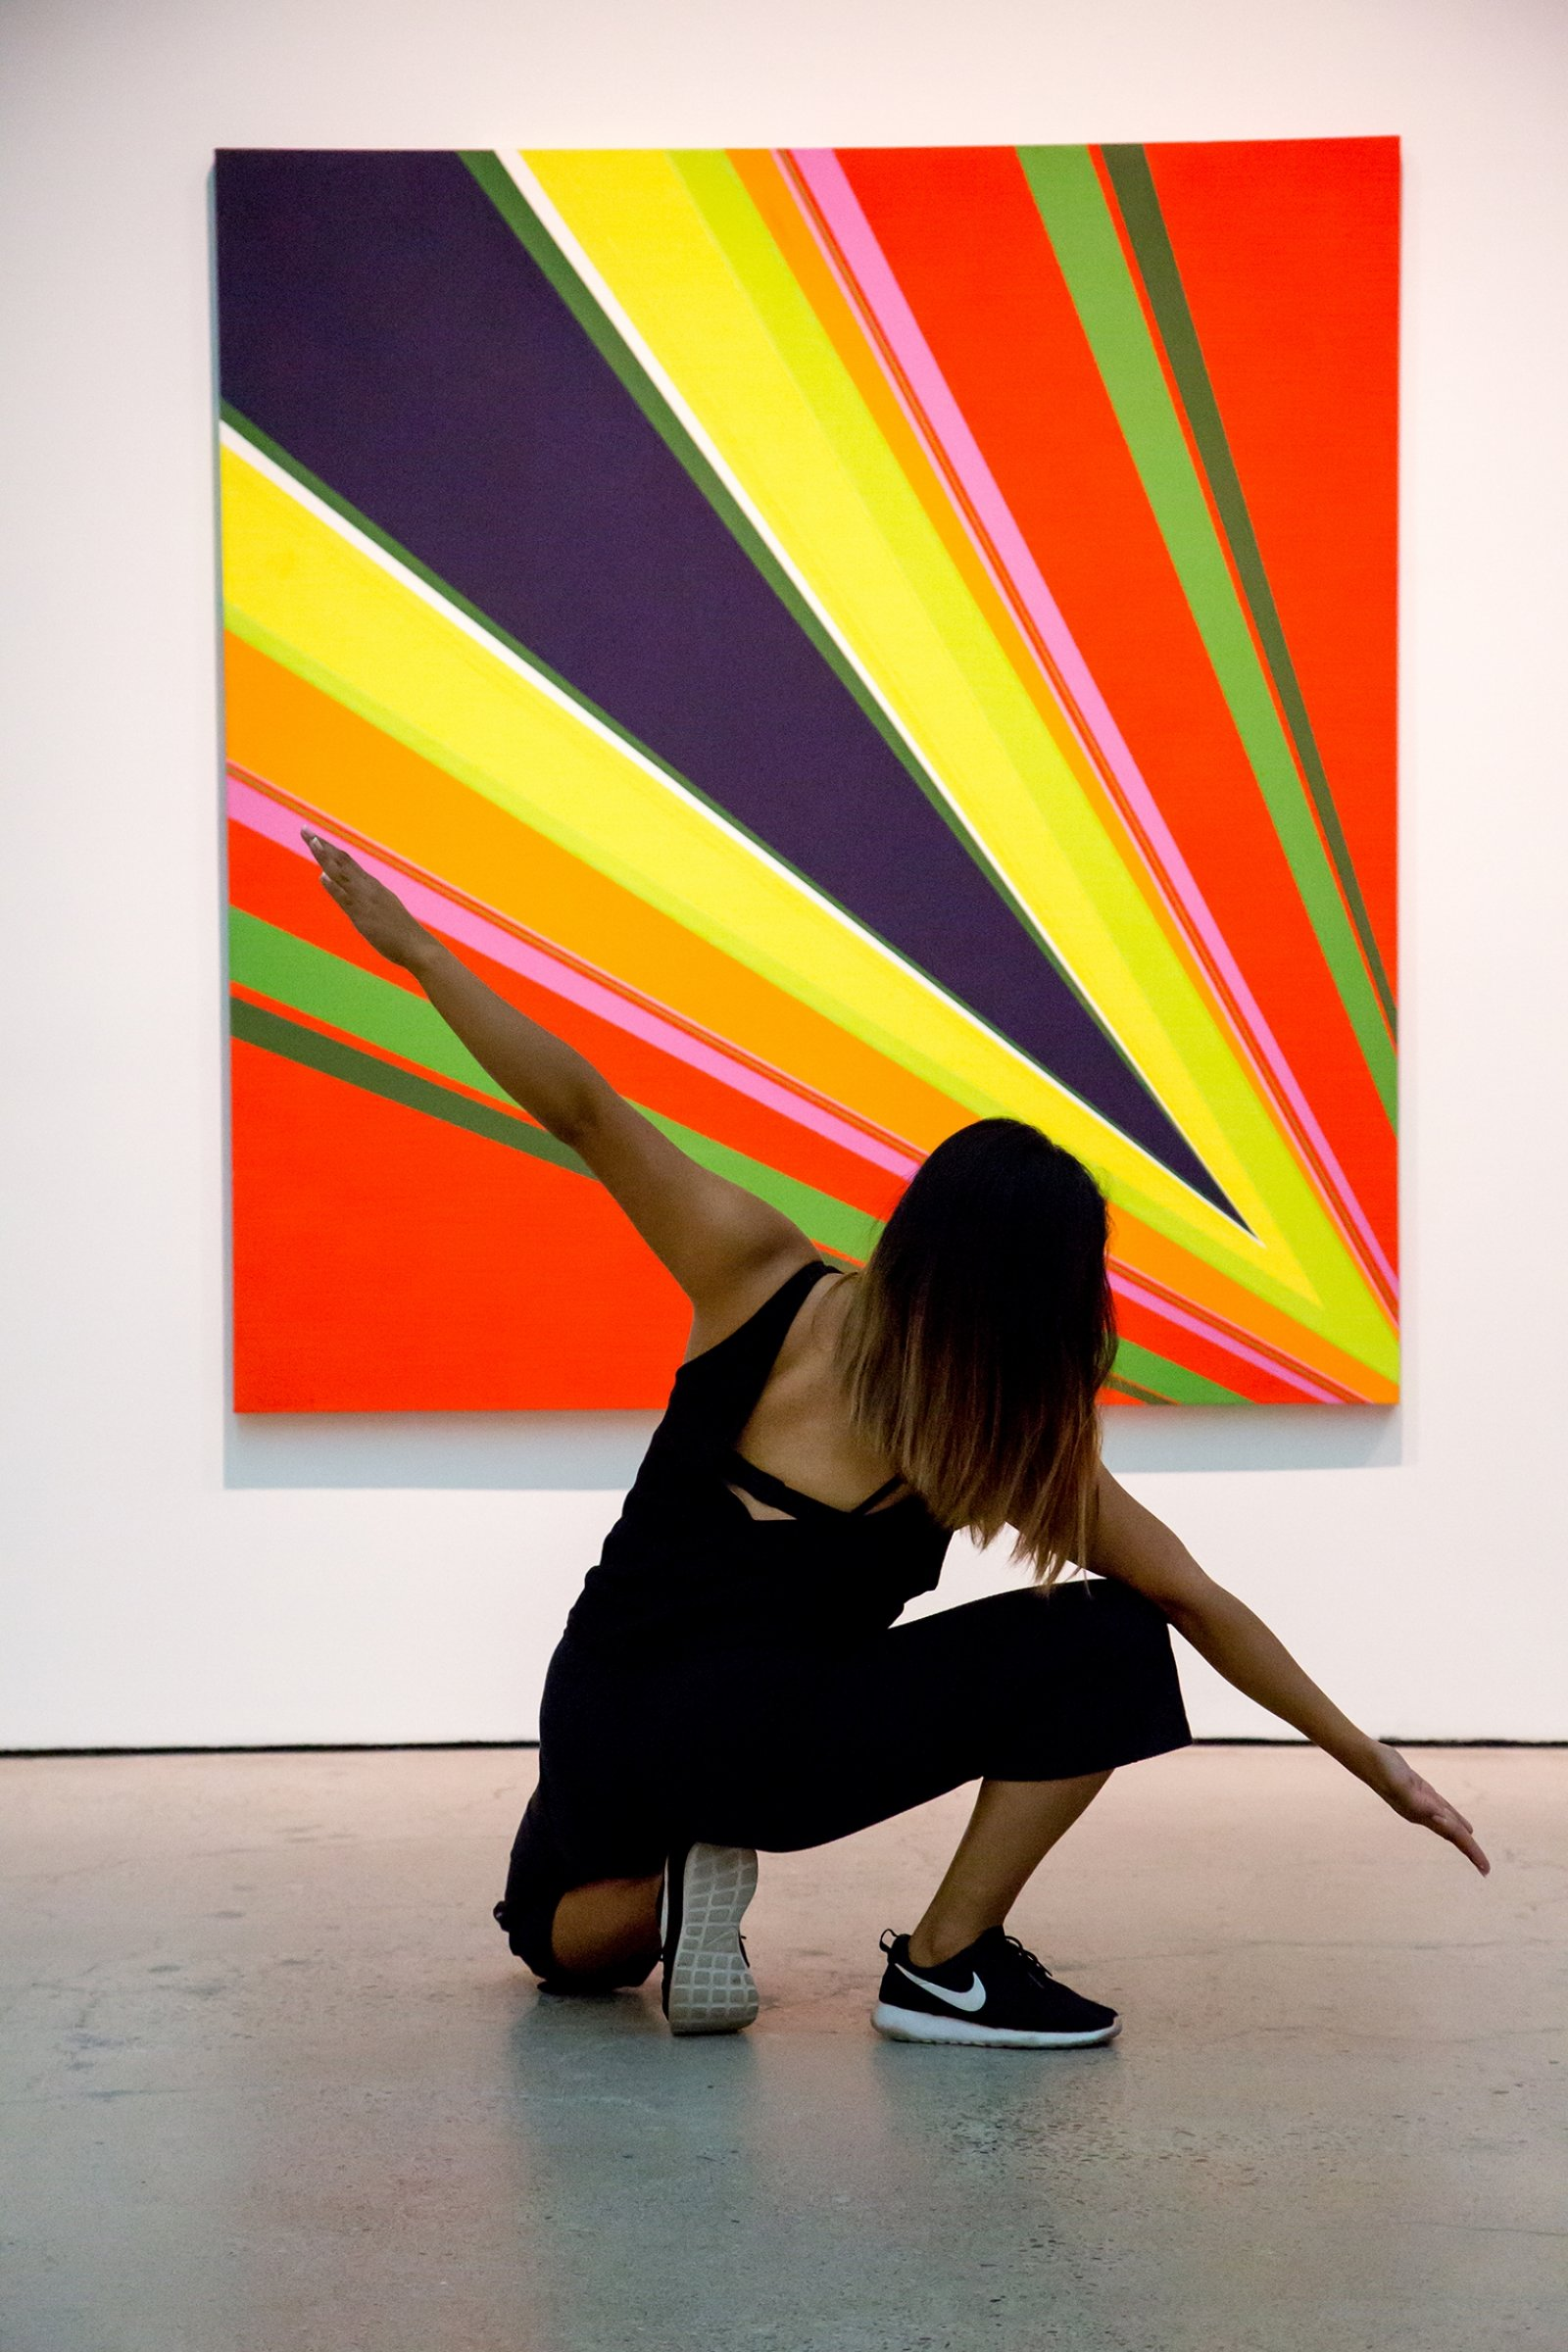 Tanya Lukin Linklater, Sun Force, 2017, site-specific performance with dancers Ceinwen Gobert and Danah Rosales in response to Fire and Light, an exhibition of Rita Letendre's paintings at the Art Gallery of Ontario, Toronto, Canada, 2017